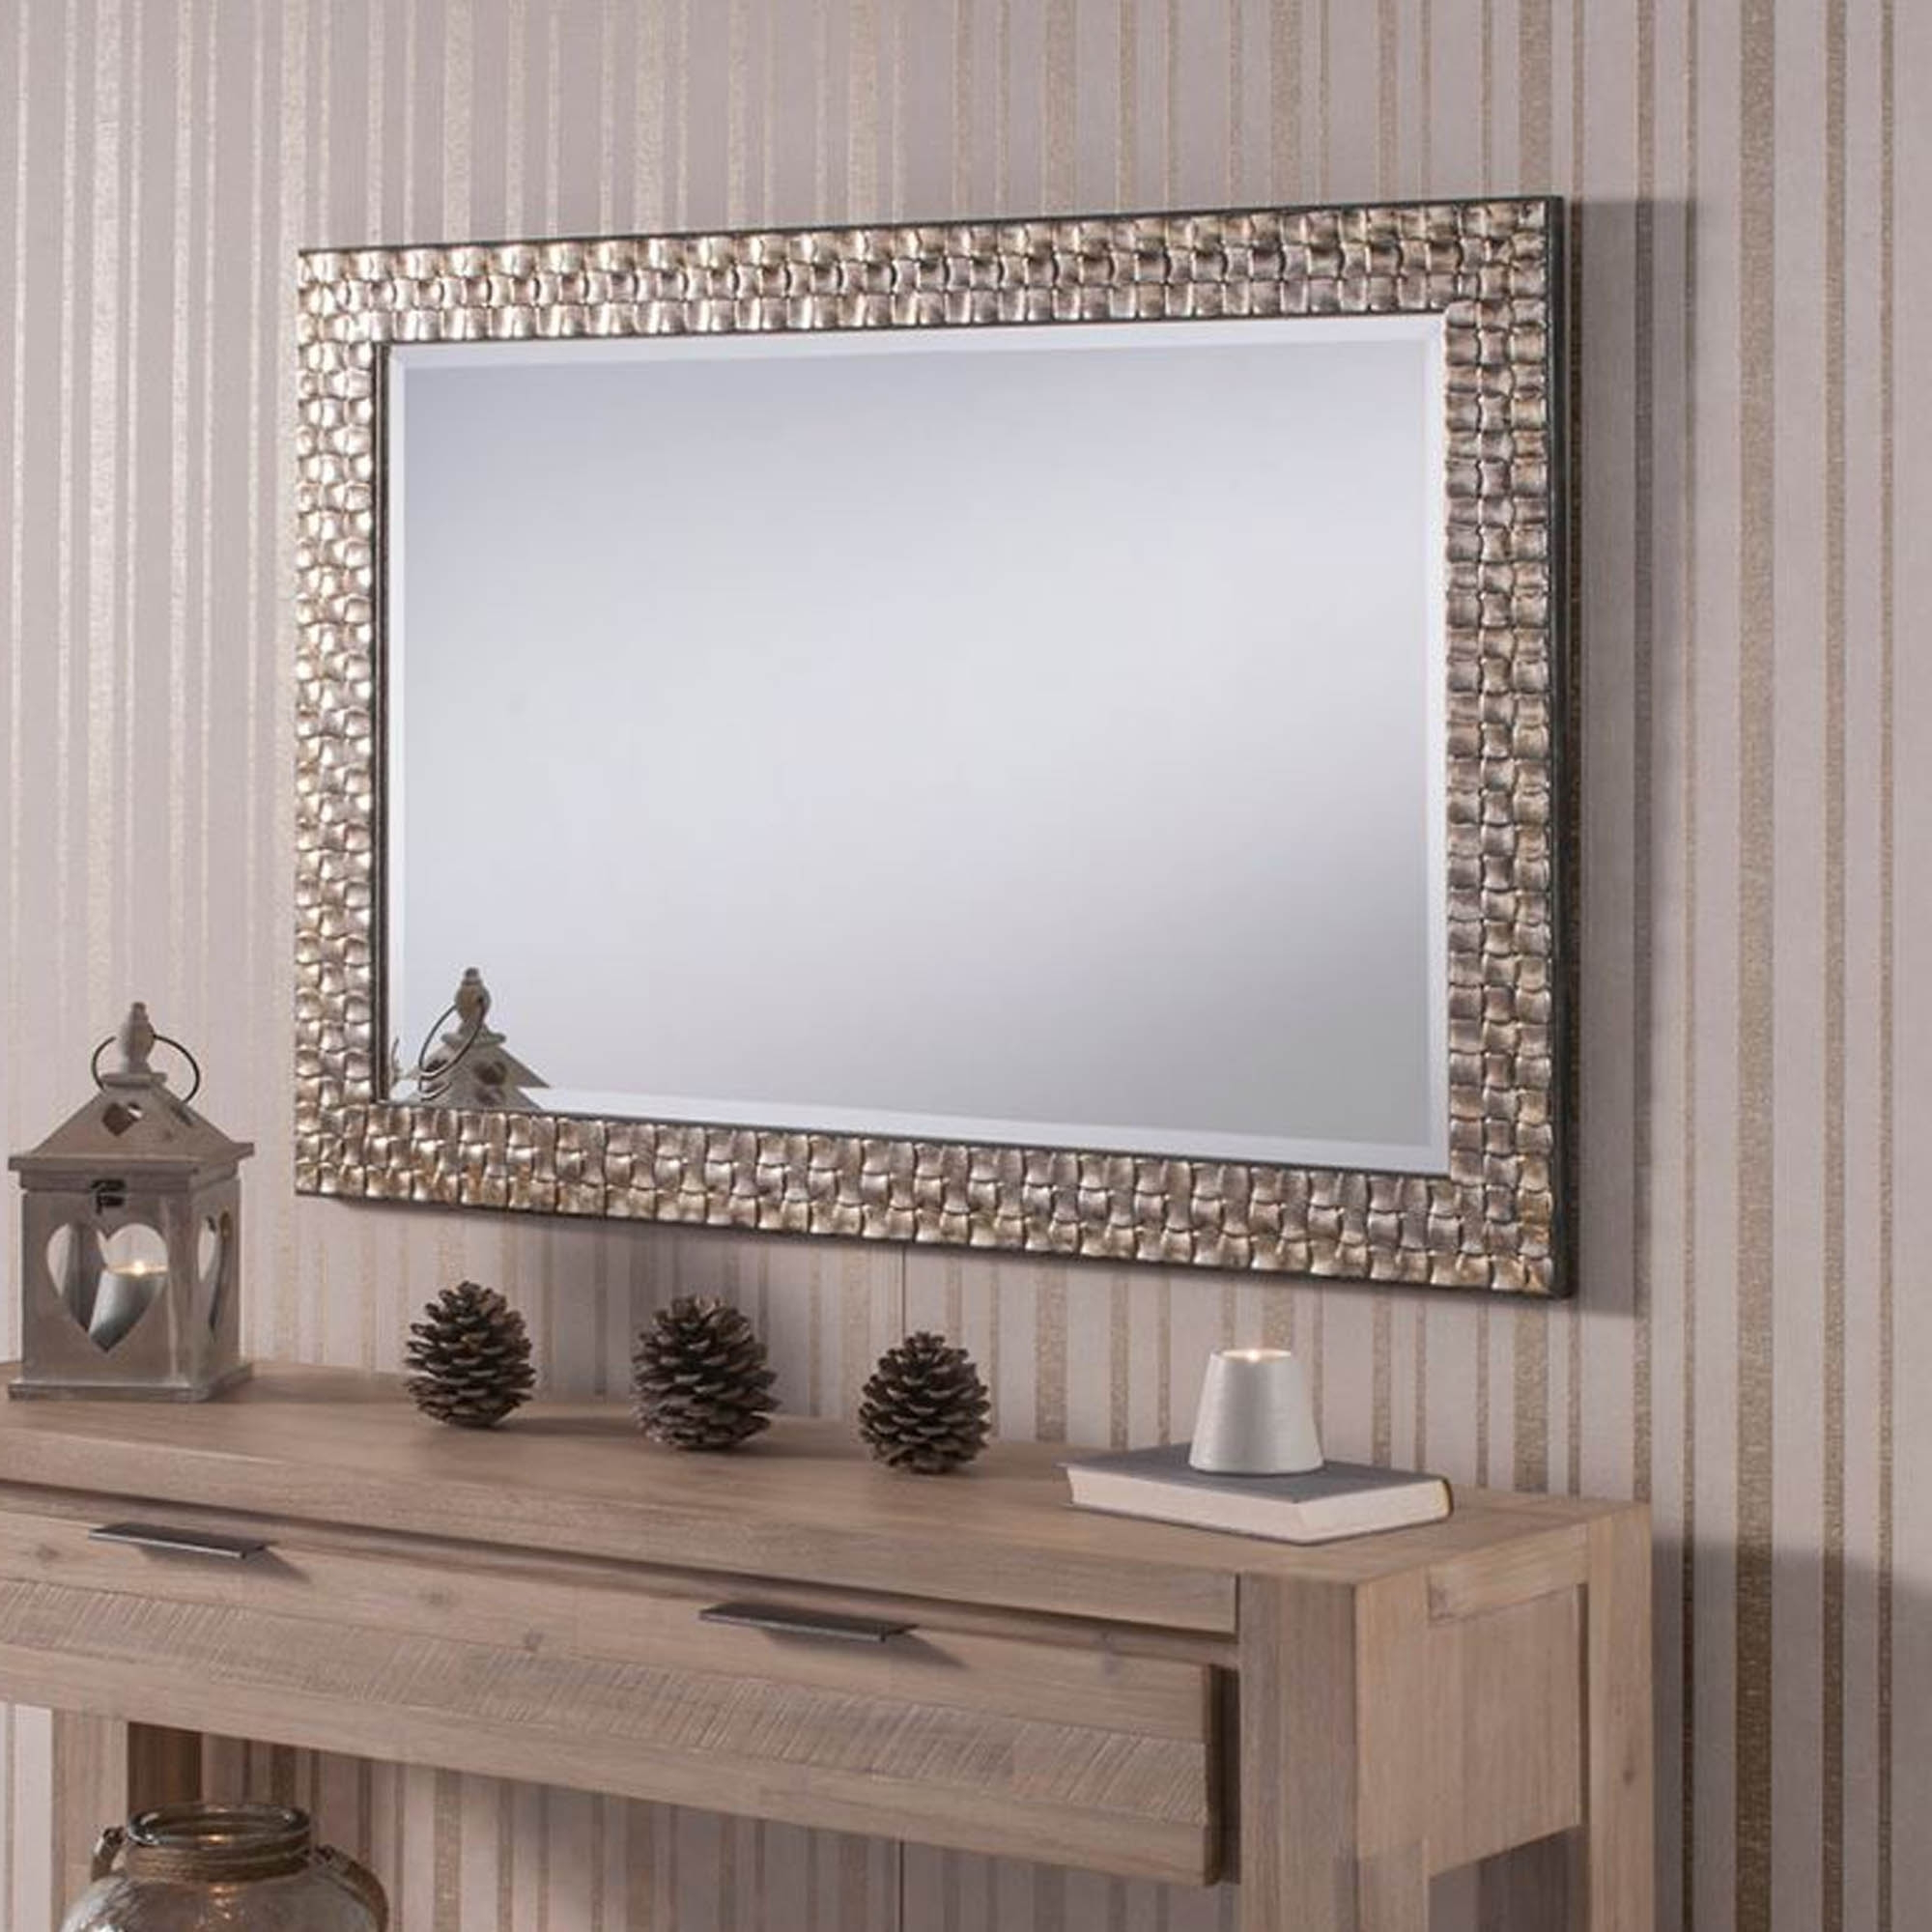 Textured Antique Silver Rectangular Wall Mirror With Best And Newest Antique Wall Mirrors (View 15 of 20)